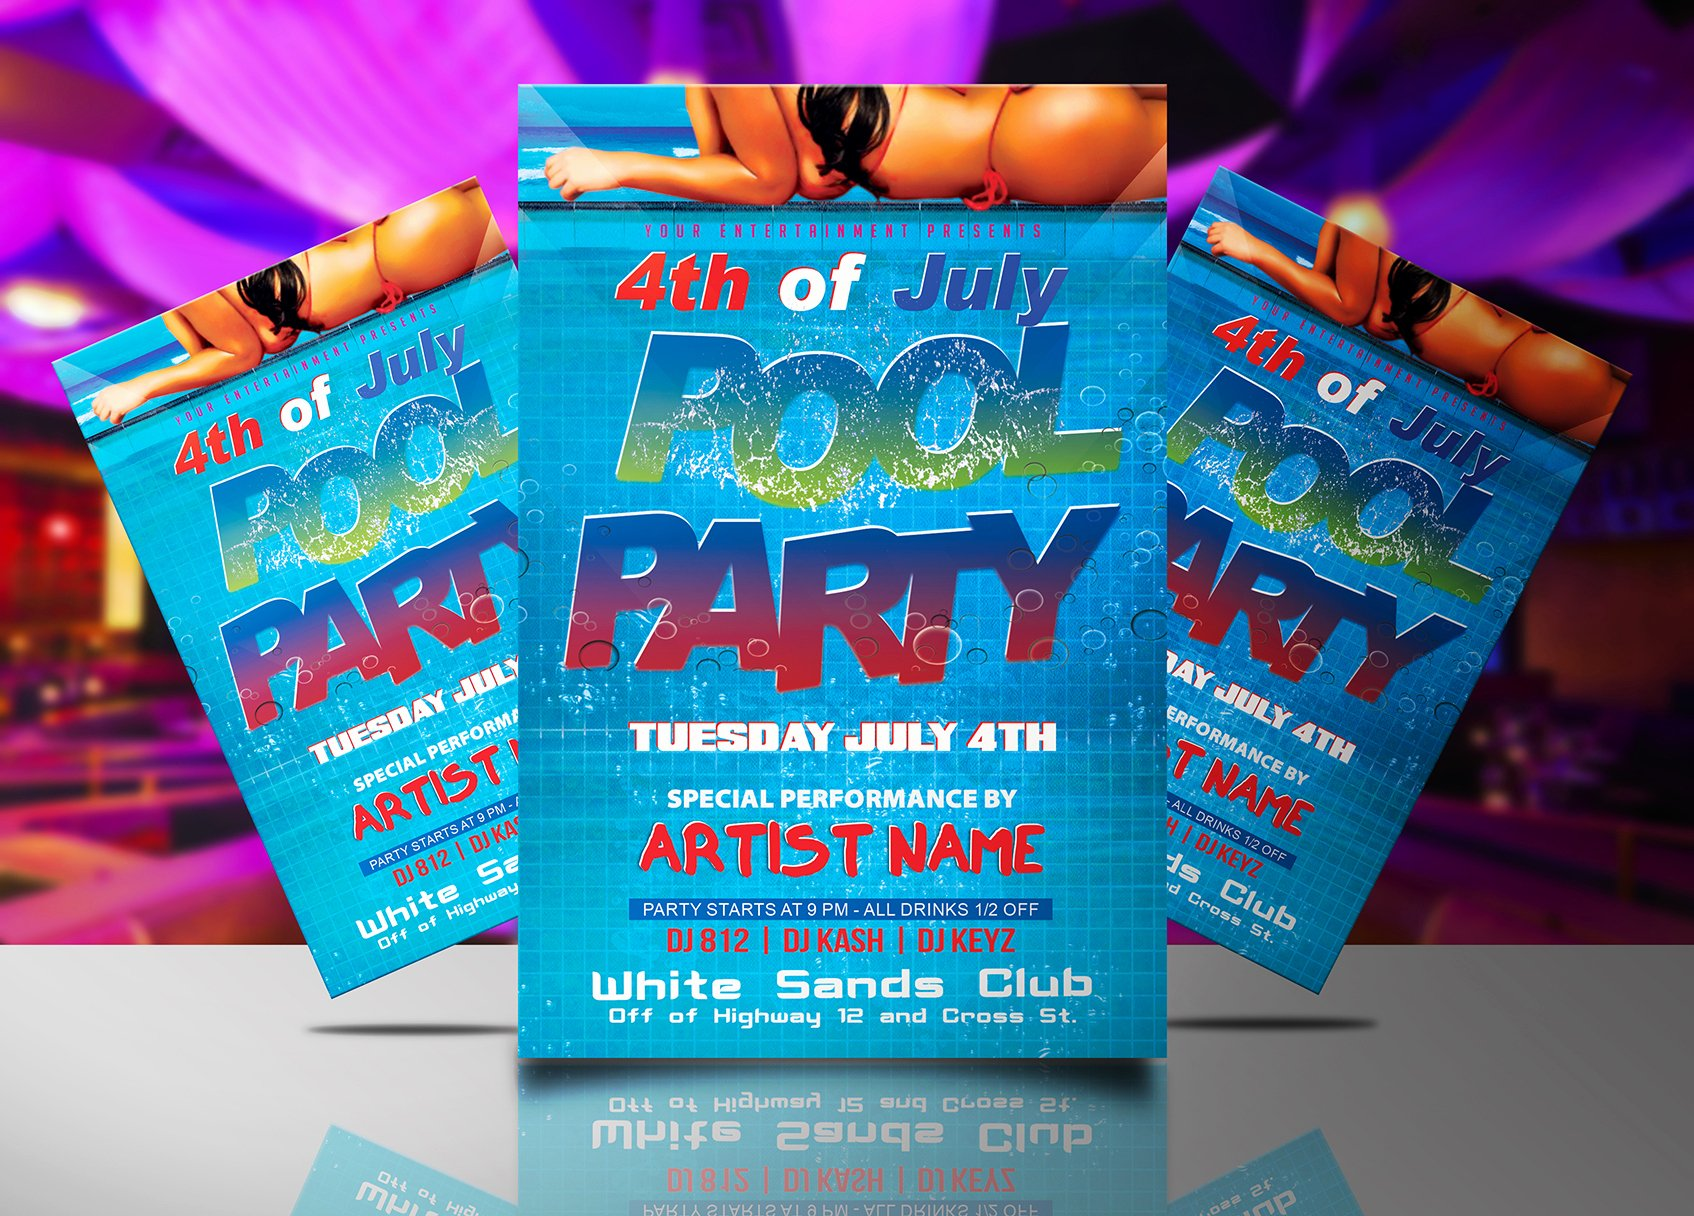 Pool Party Flyer Template Lovely 4th Of July Pool Party Flyer Template